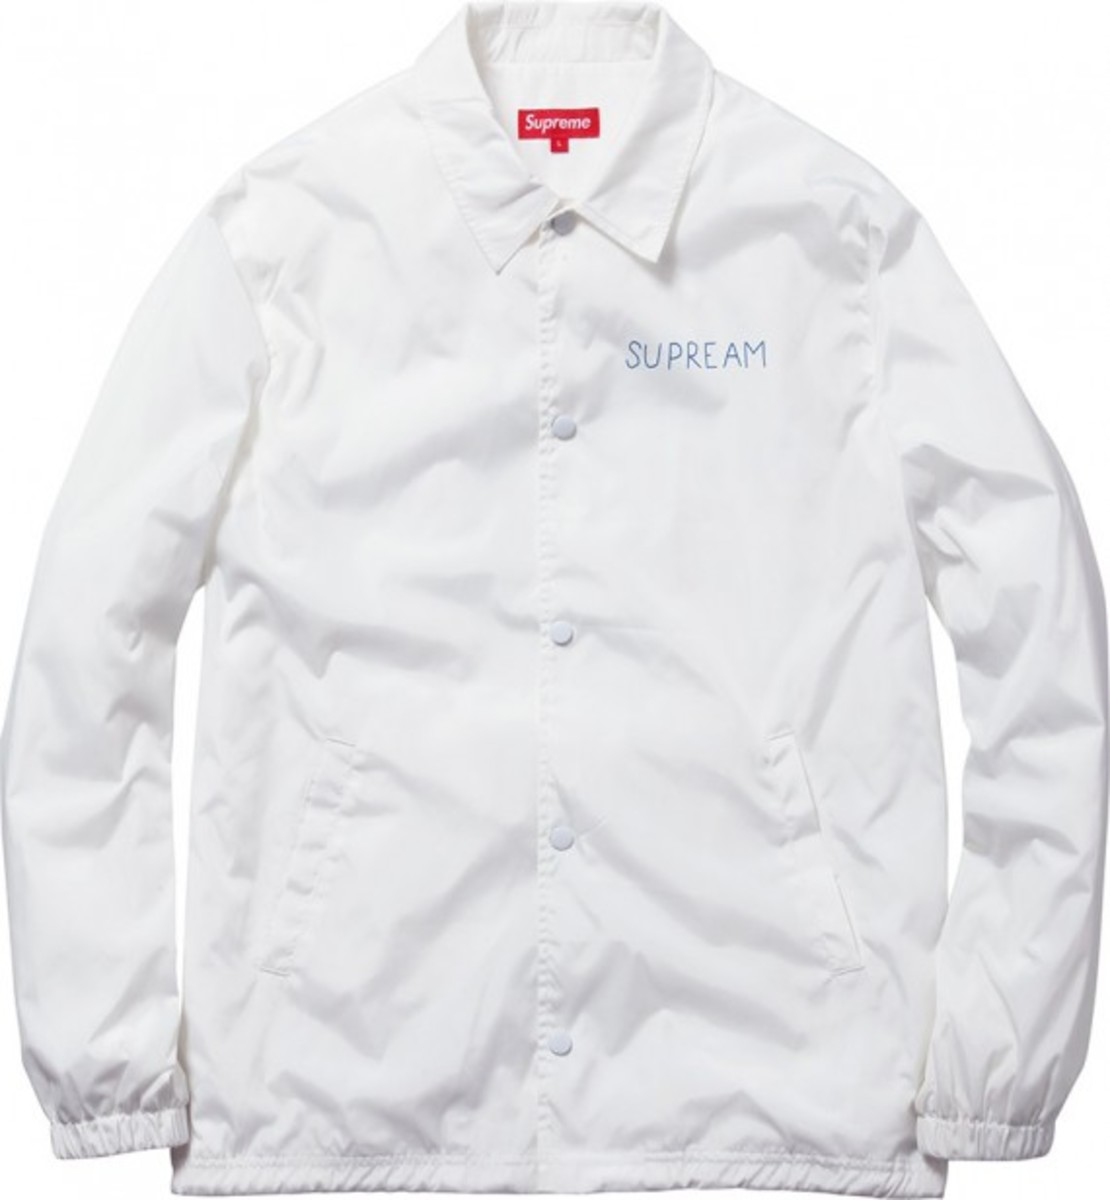 supreme-spring-summer-2013-outerwear-collection-20